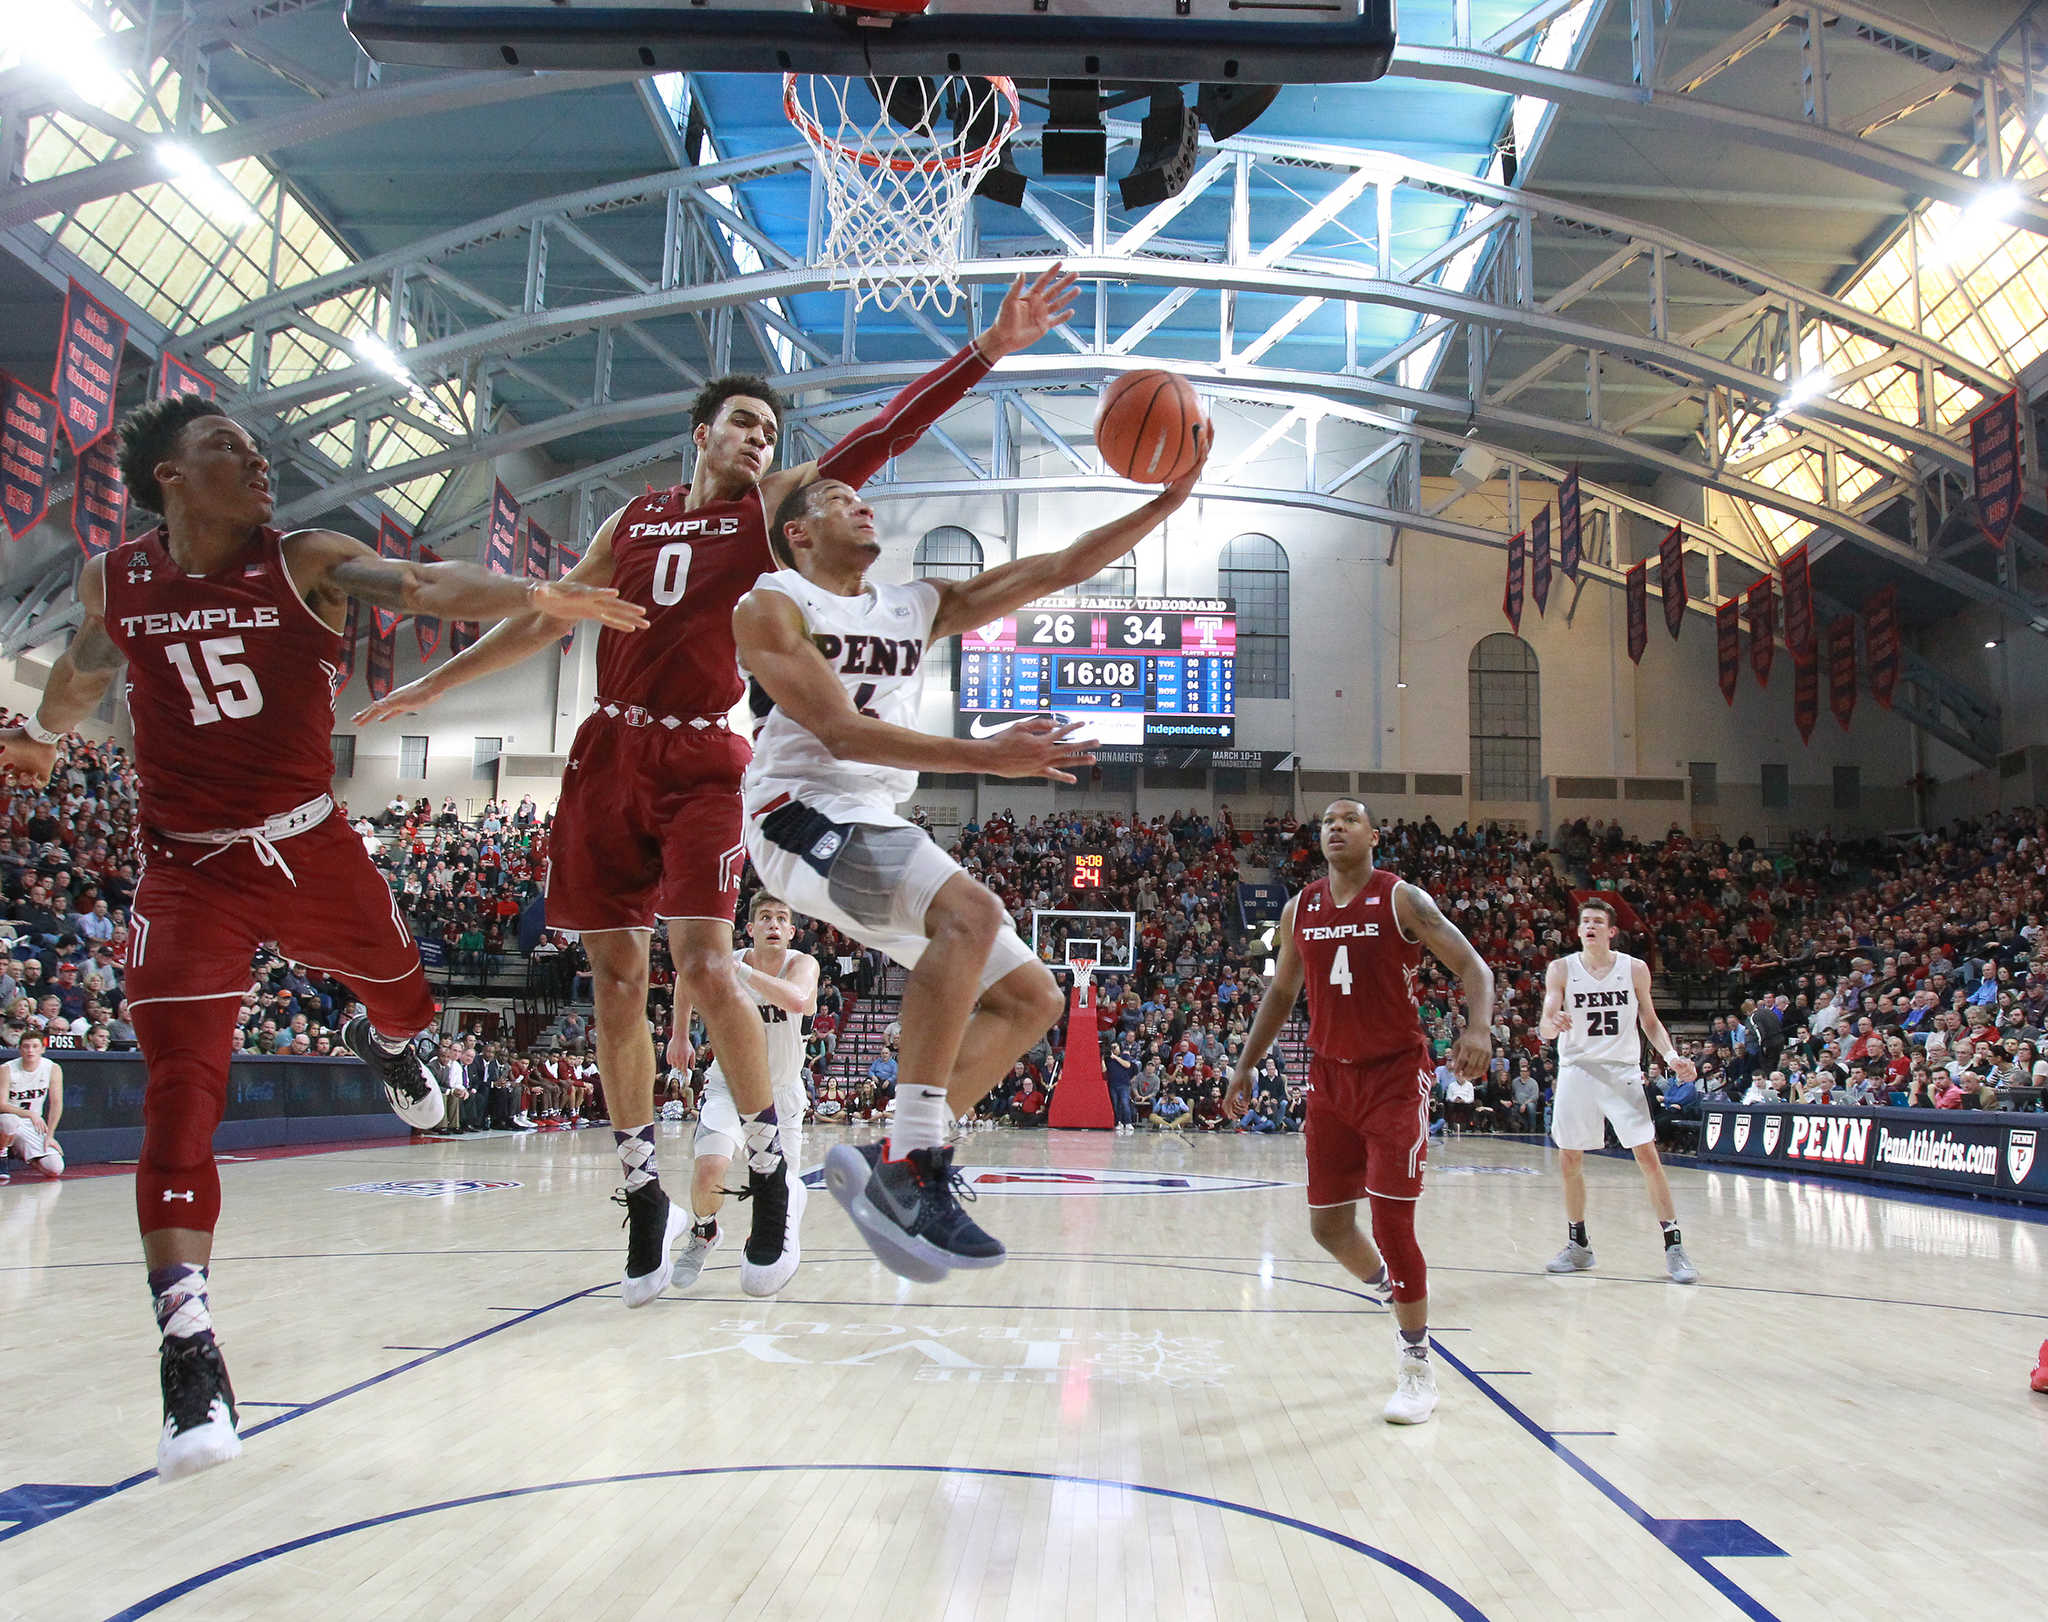 Darnell Foreman, center, of Penn splits Nate Pierre-Louis, left, and Obi Enechionyia, 2nd from left, of Temple during the 2nd half at the Palestra on Jan 20, 2018.